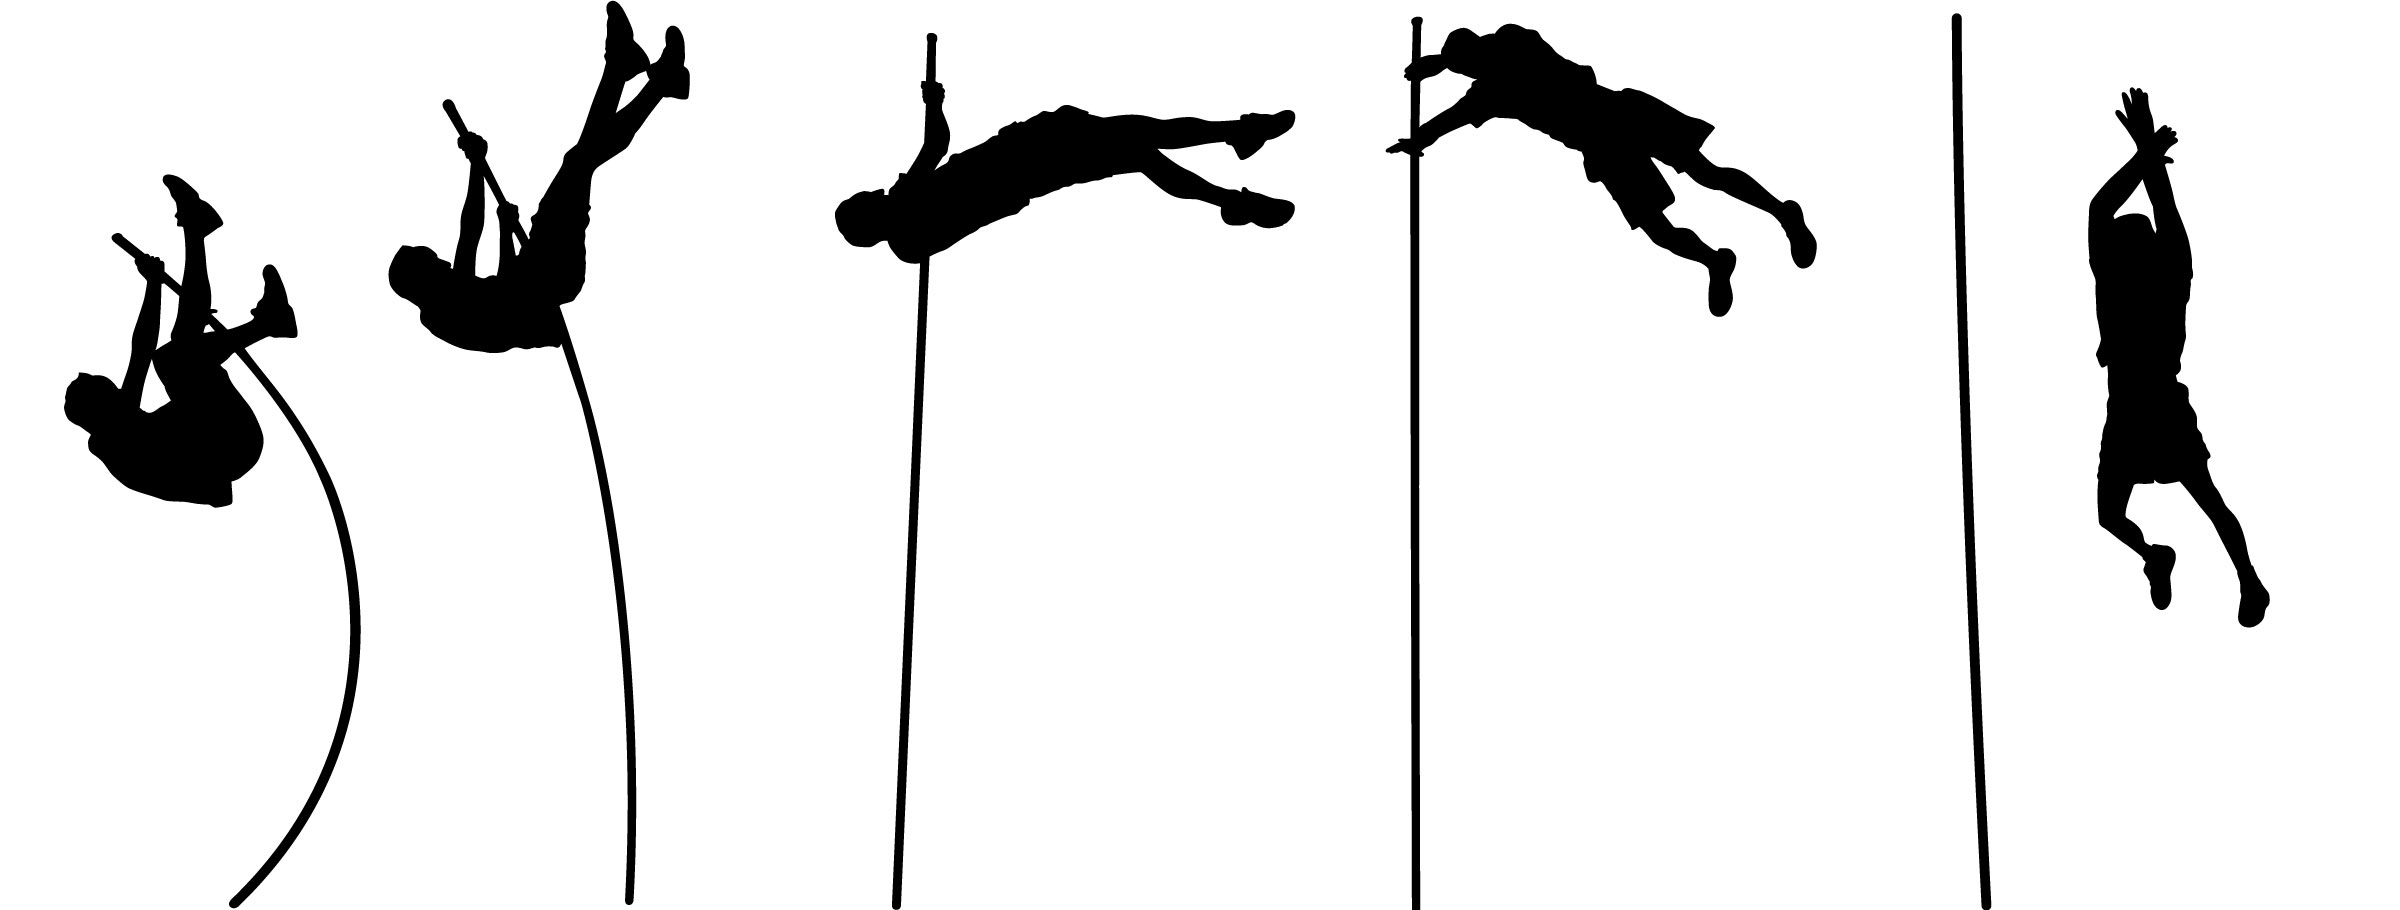 The Language Of Pole Vaulting Matthew Dicks